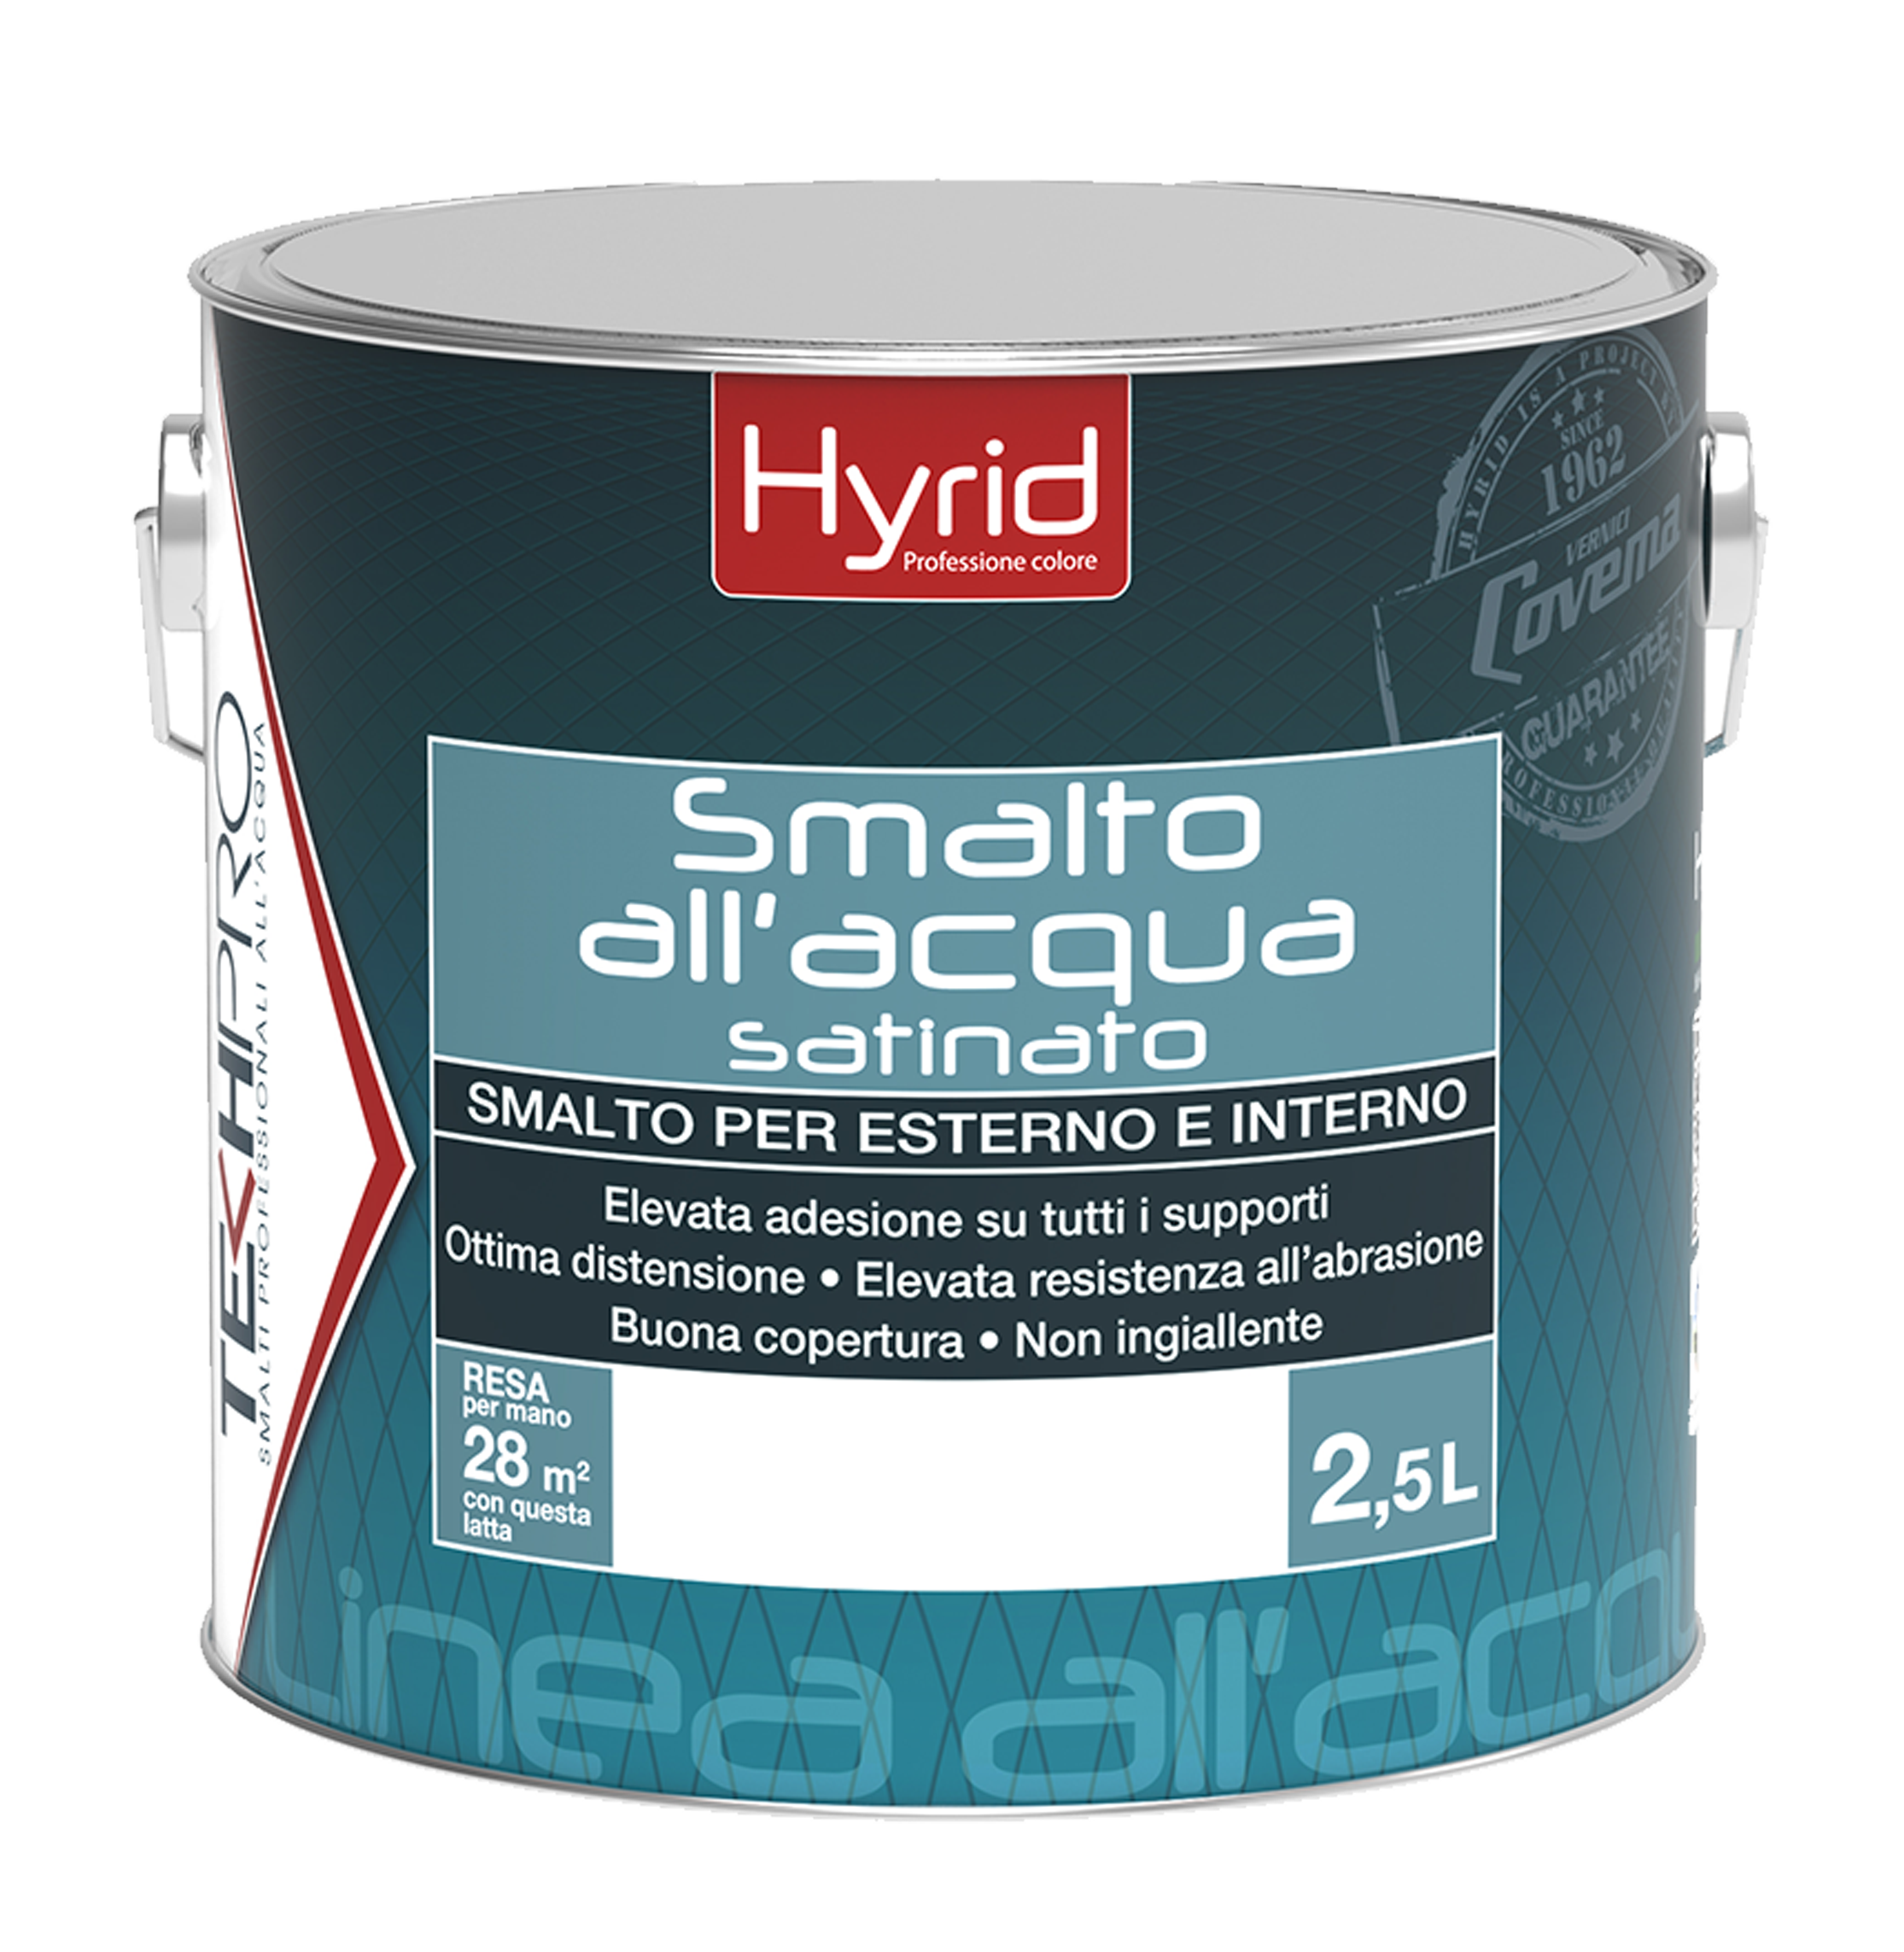 Hyrid smalto all'acqua satinato